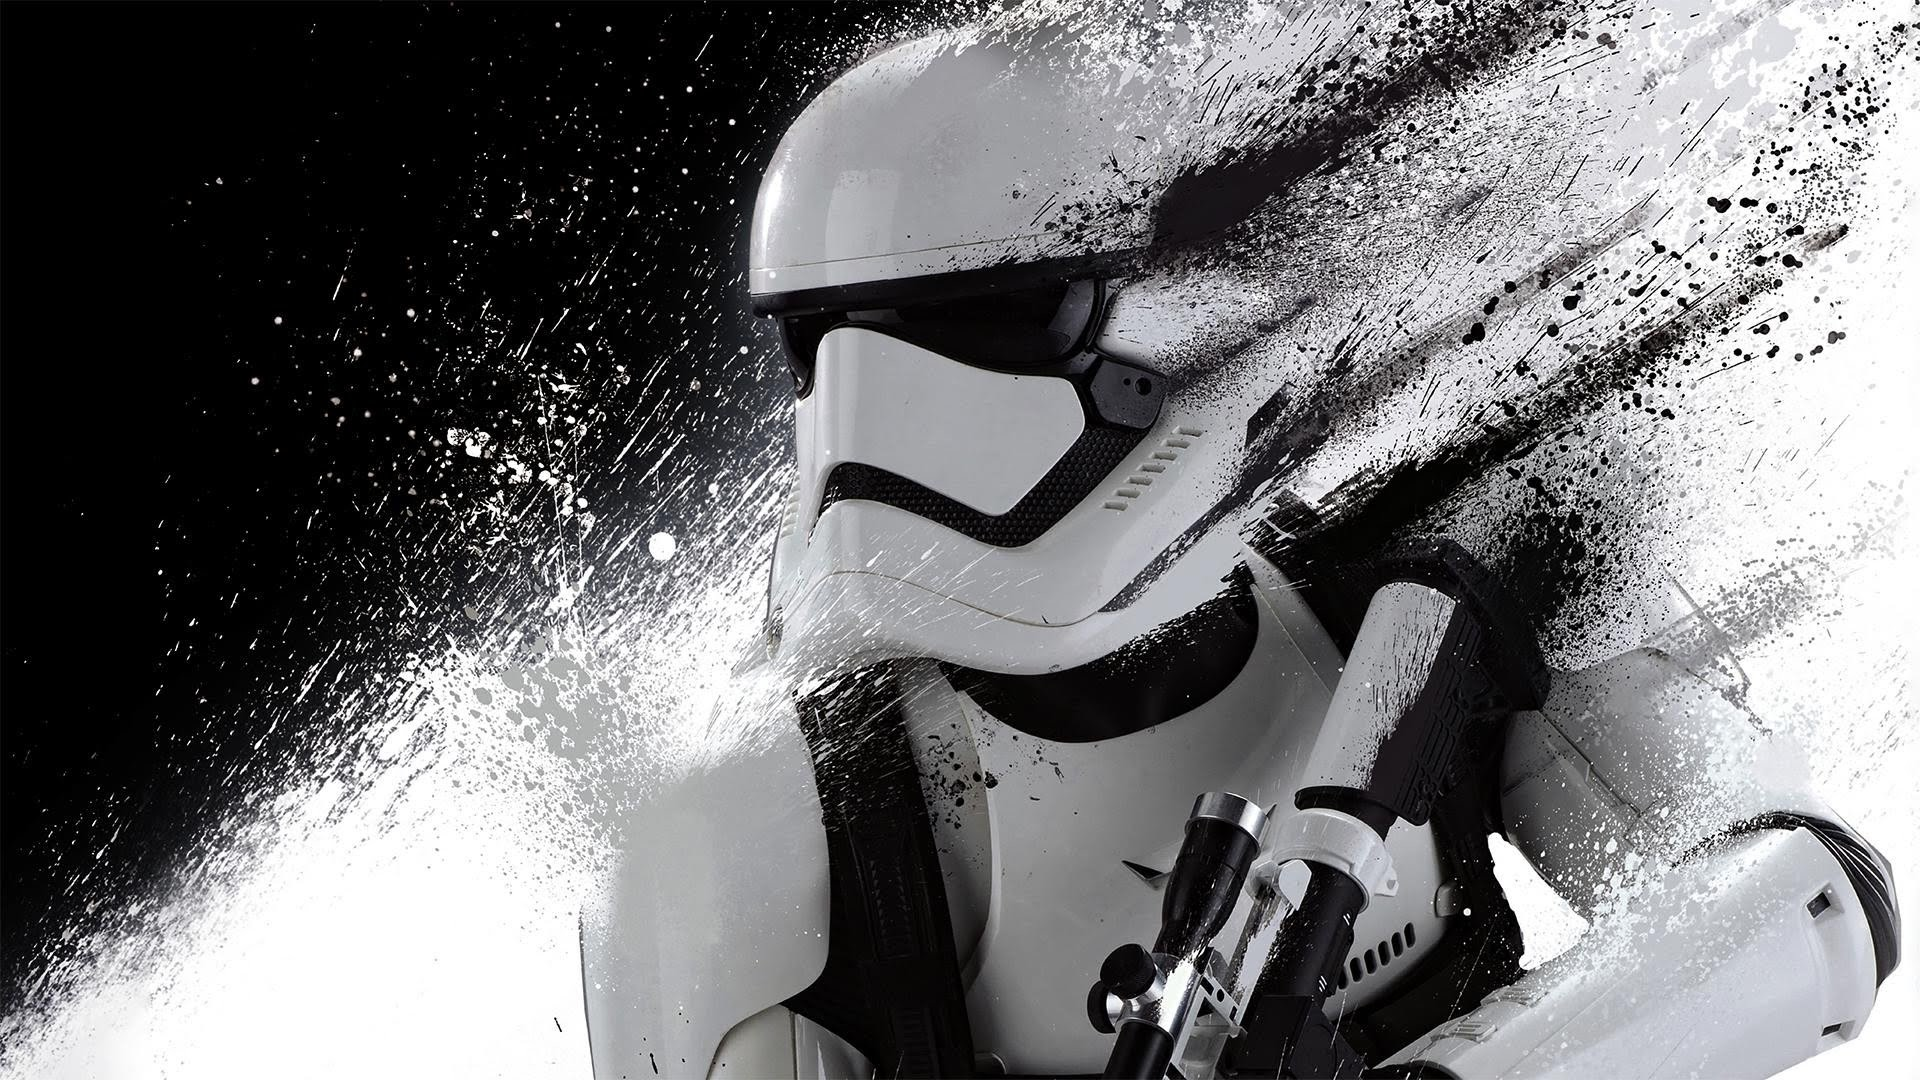 Awesome Star Wars Wallpaper!